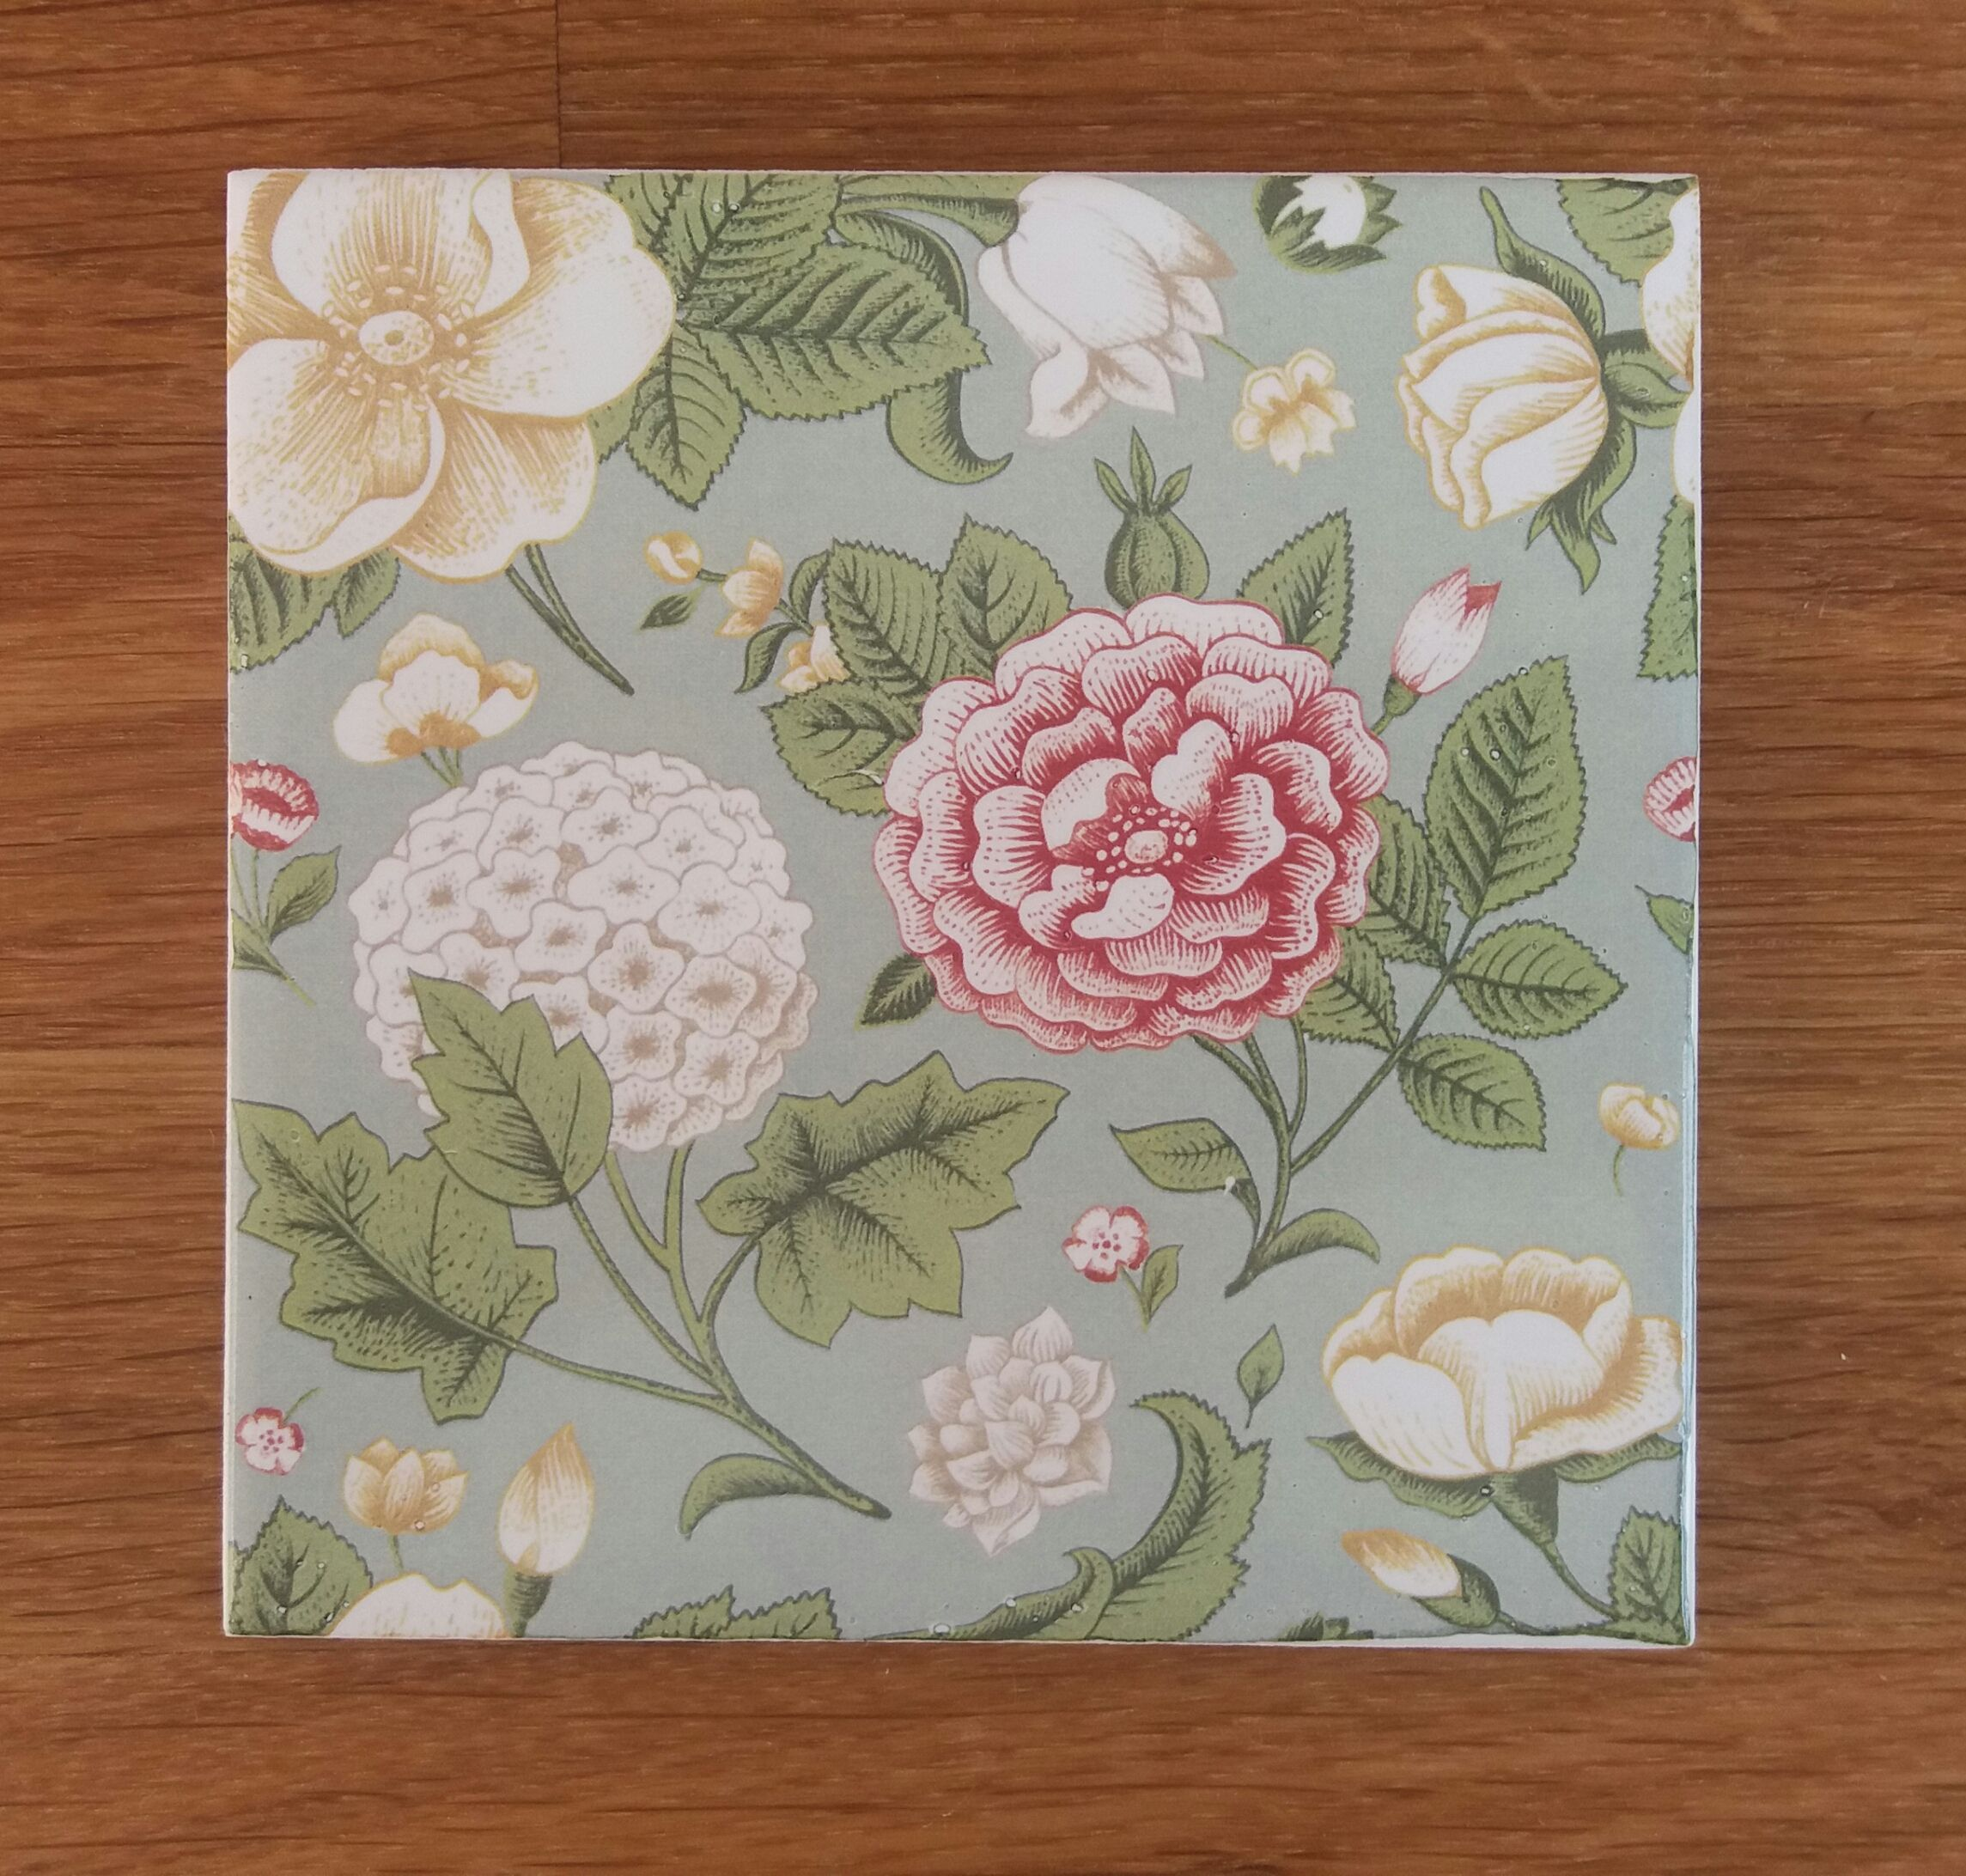 Vintage Style Patterned Ceramic Wall Tile By Floral Tiles